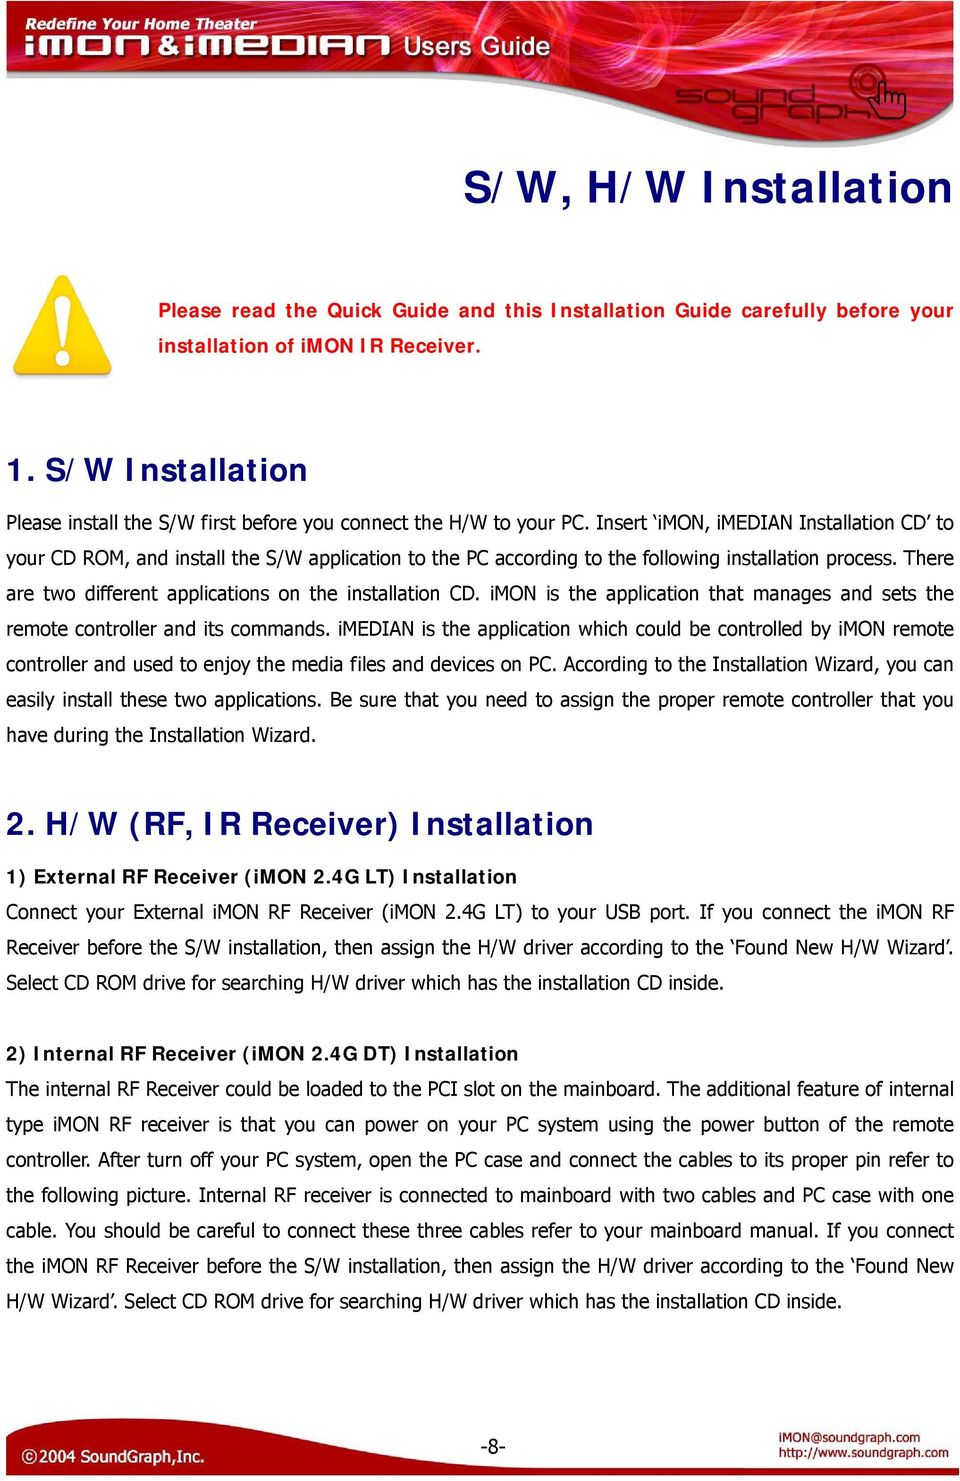 Insert imon, imedian Installation CD to your CD ROM, and install the S/W application to the PC according to the following installation process.